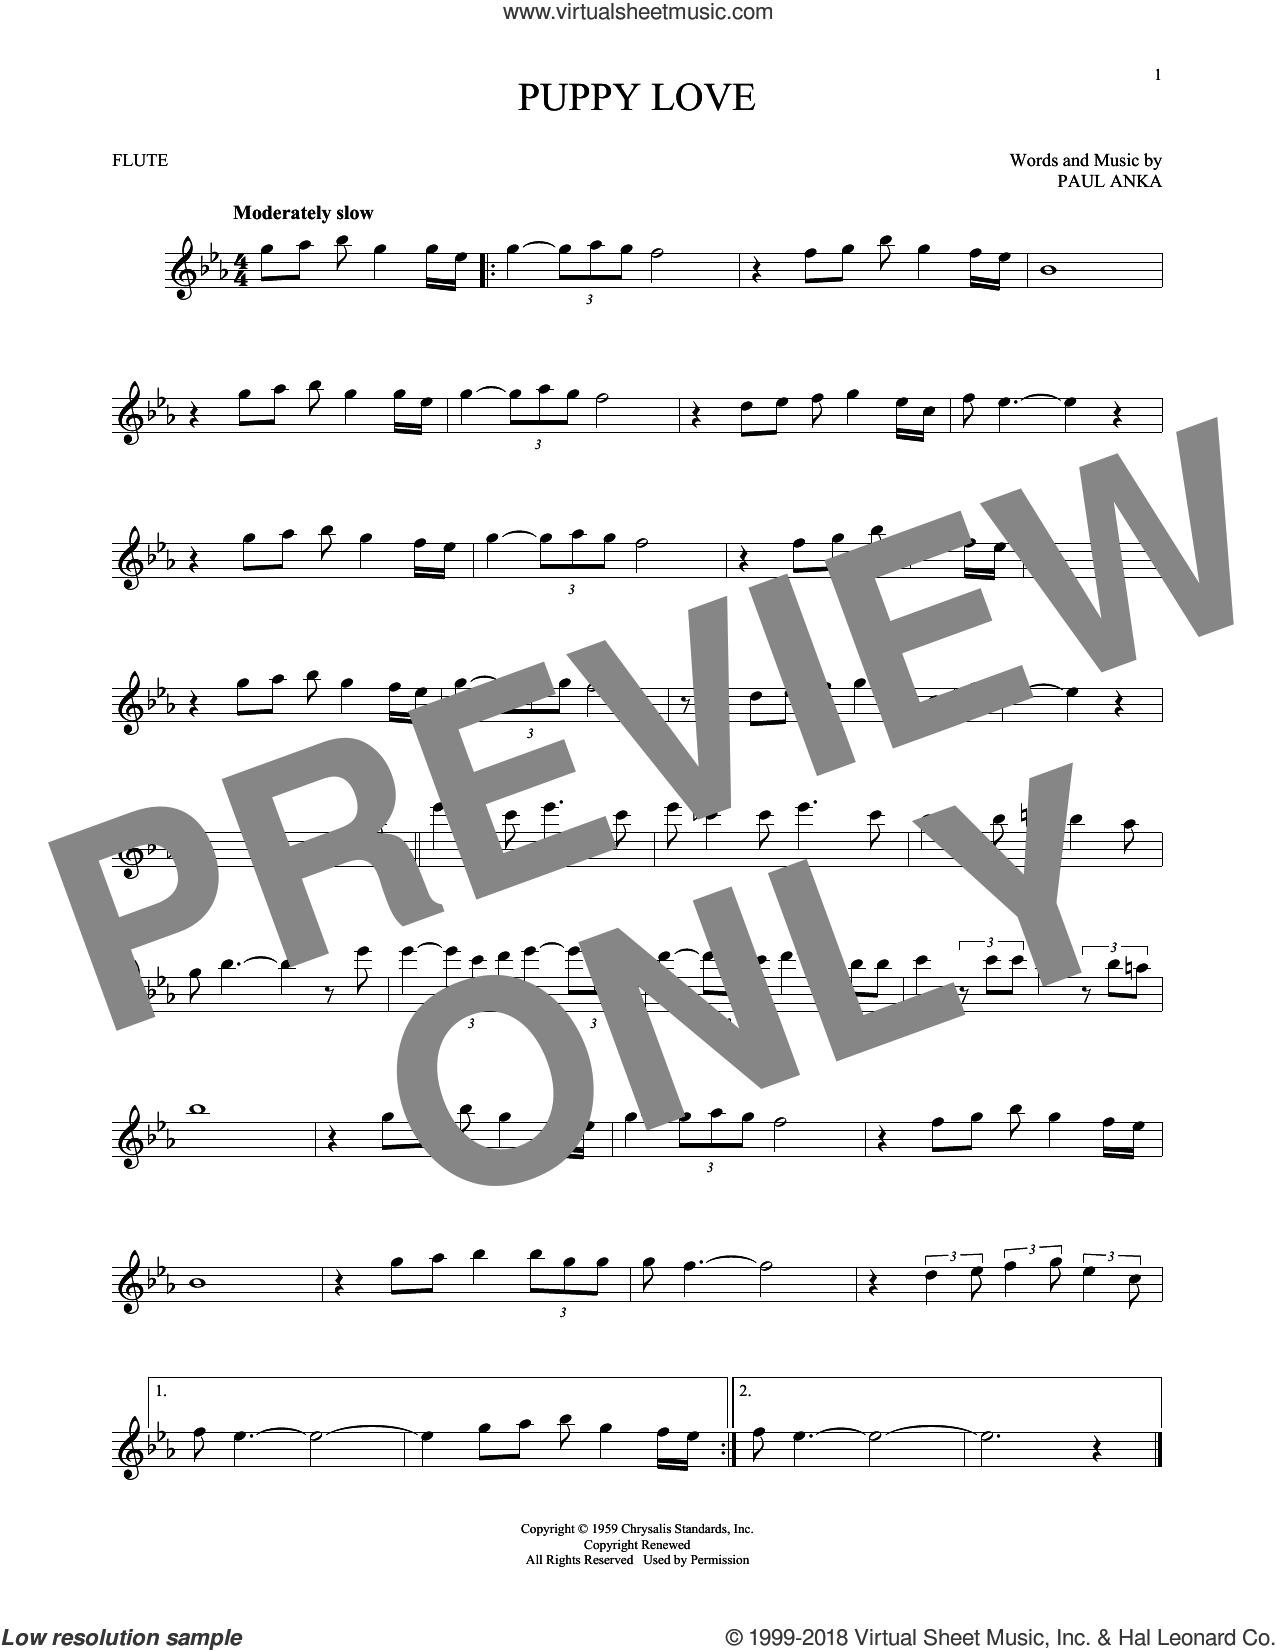 Puppy Love sheet music for flute solo by Paul Anka and Donny Osmond, intermediate skill level